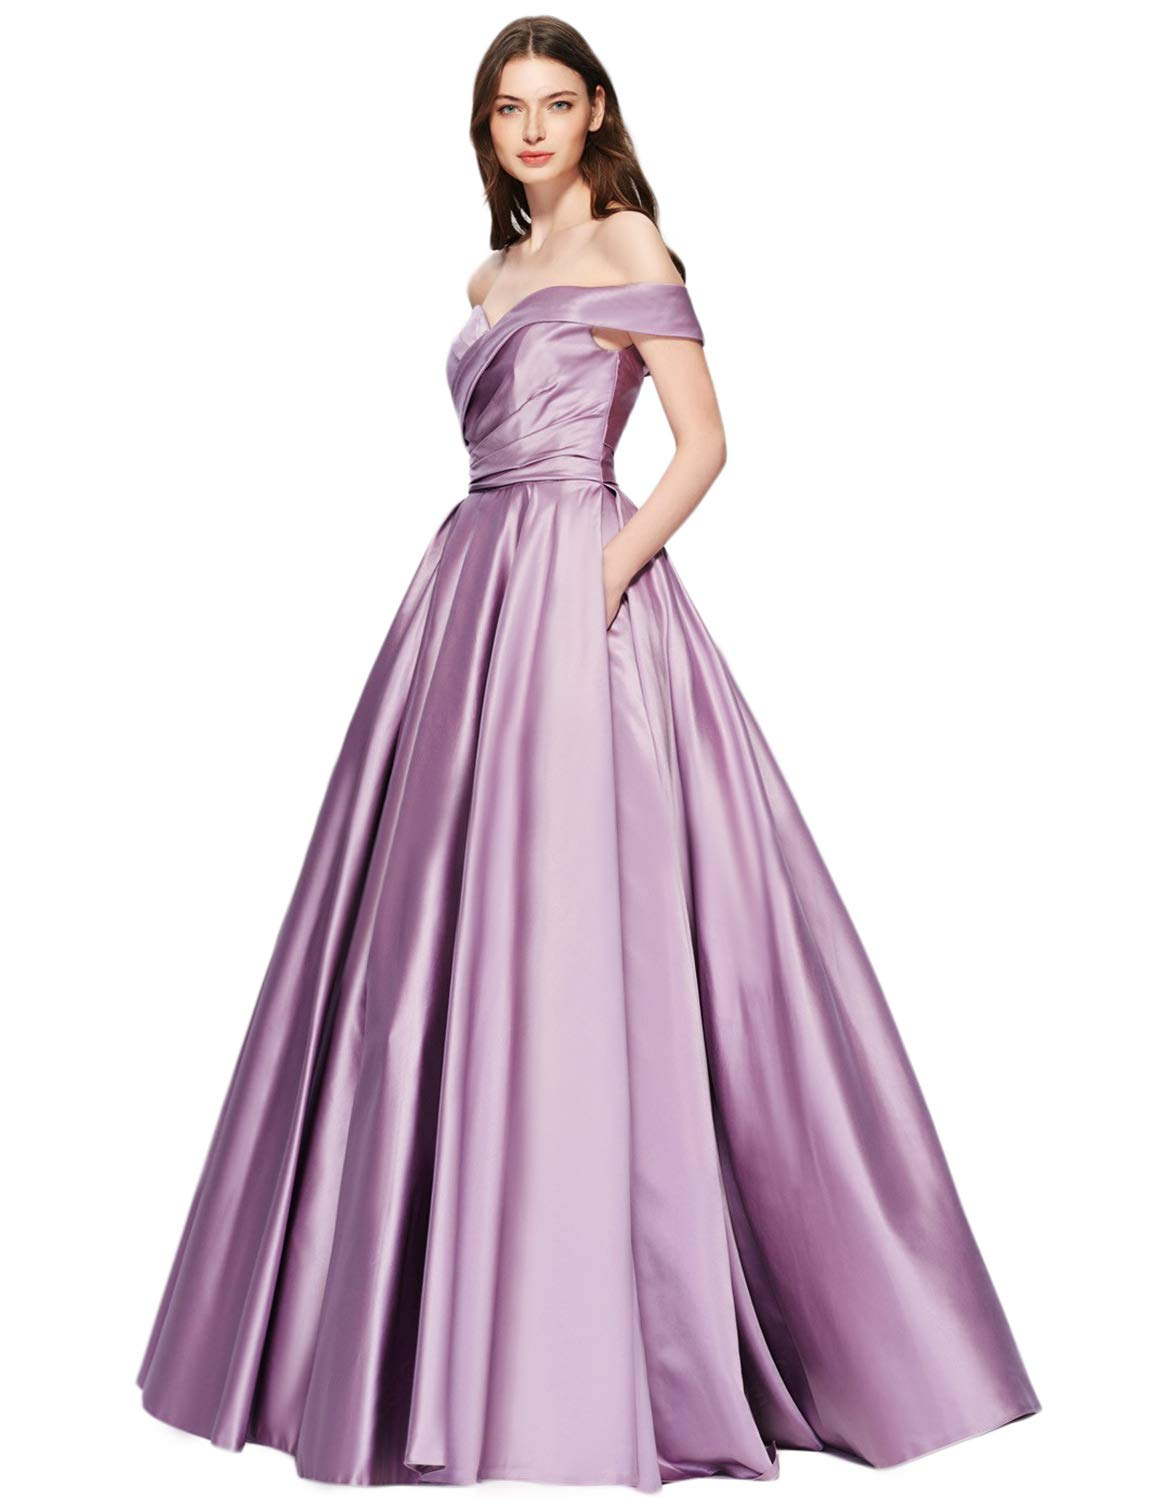 on sale online various kinds of official supplier PLMS Off Shoulder Prom Dress Pockets Satin Maxi Evening Gown Formal Lilac 16